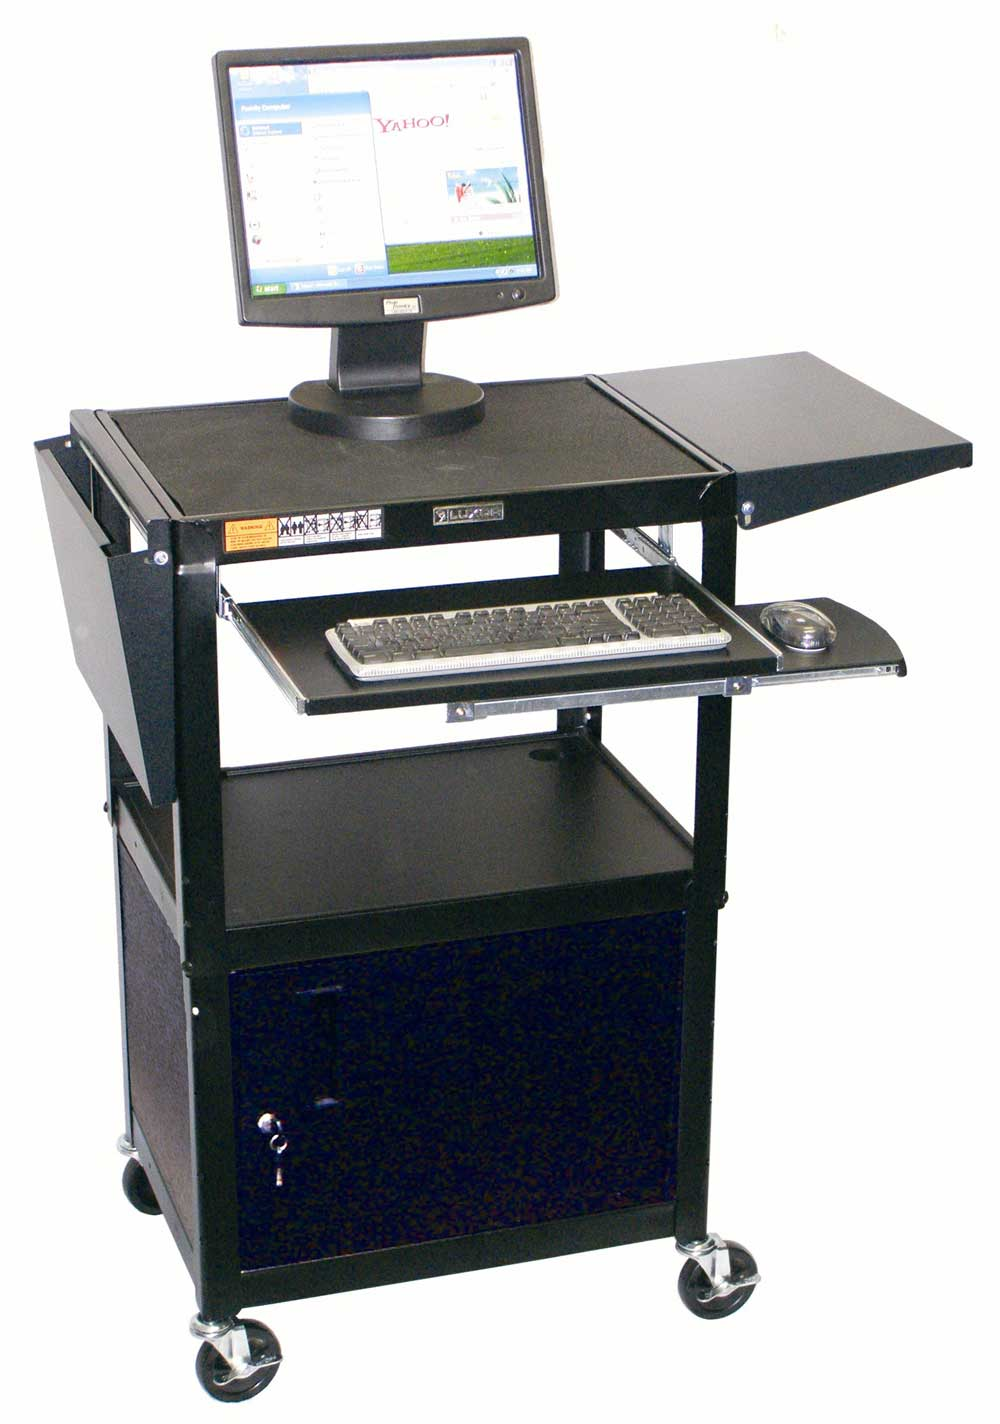 Luxor black personal computer stand